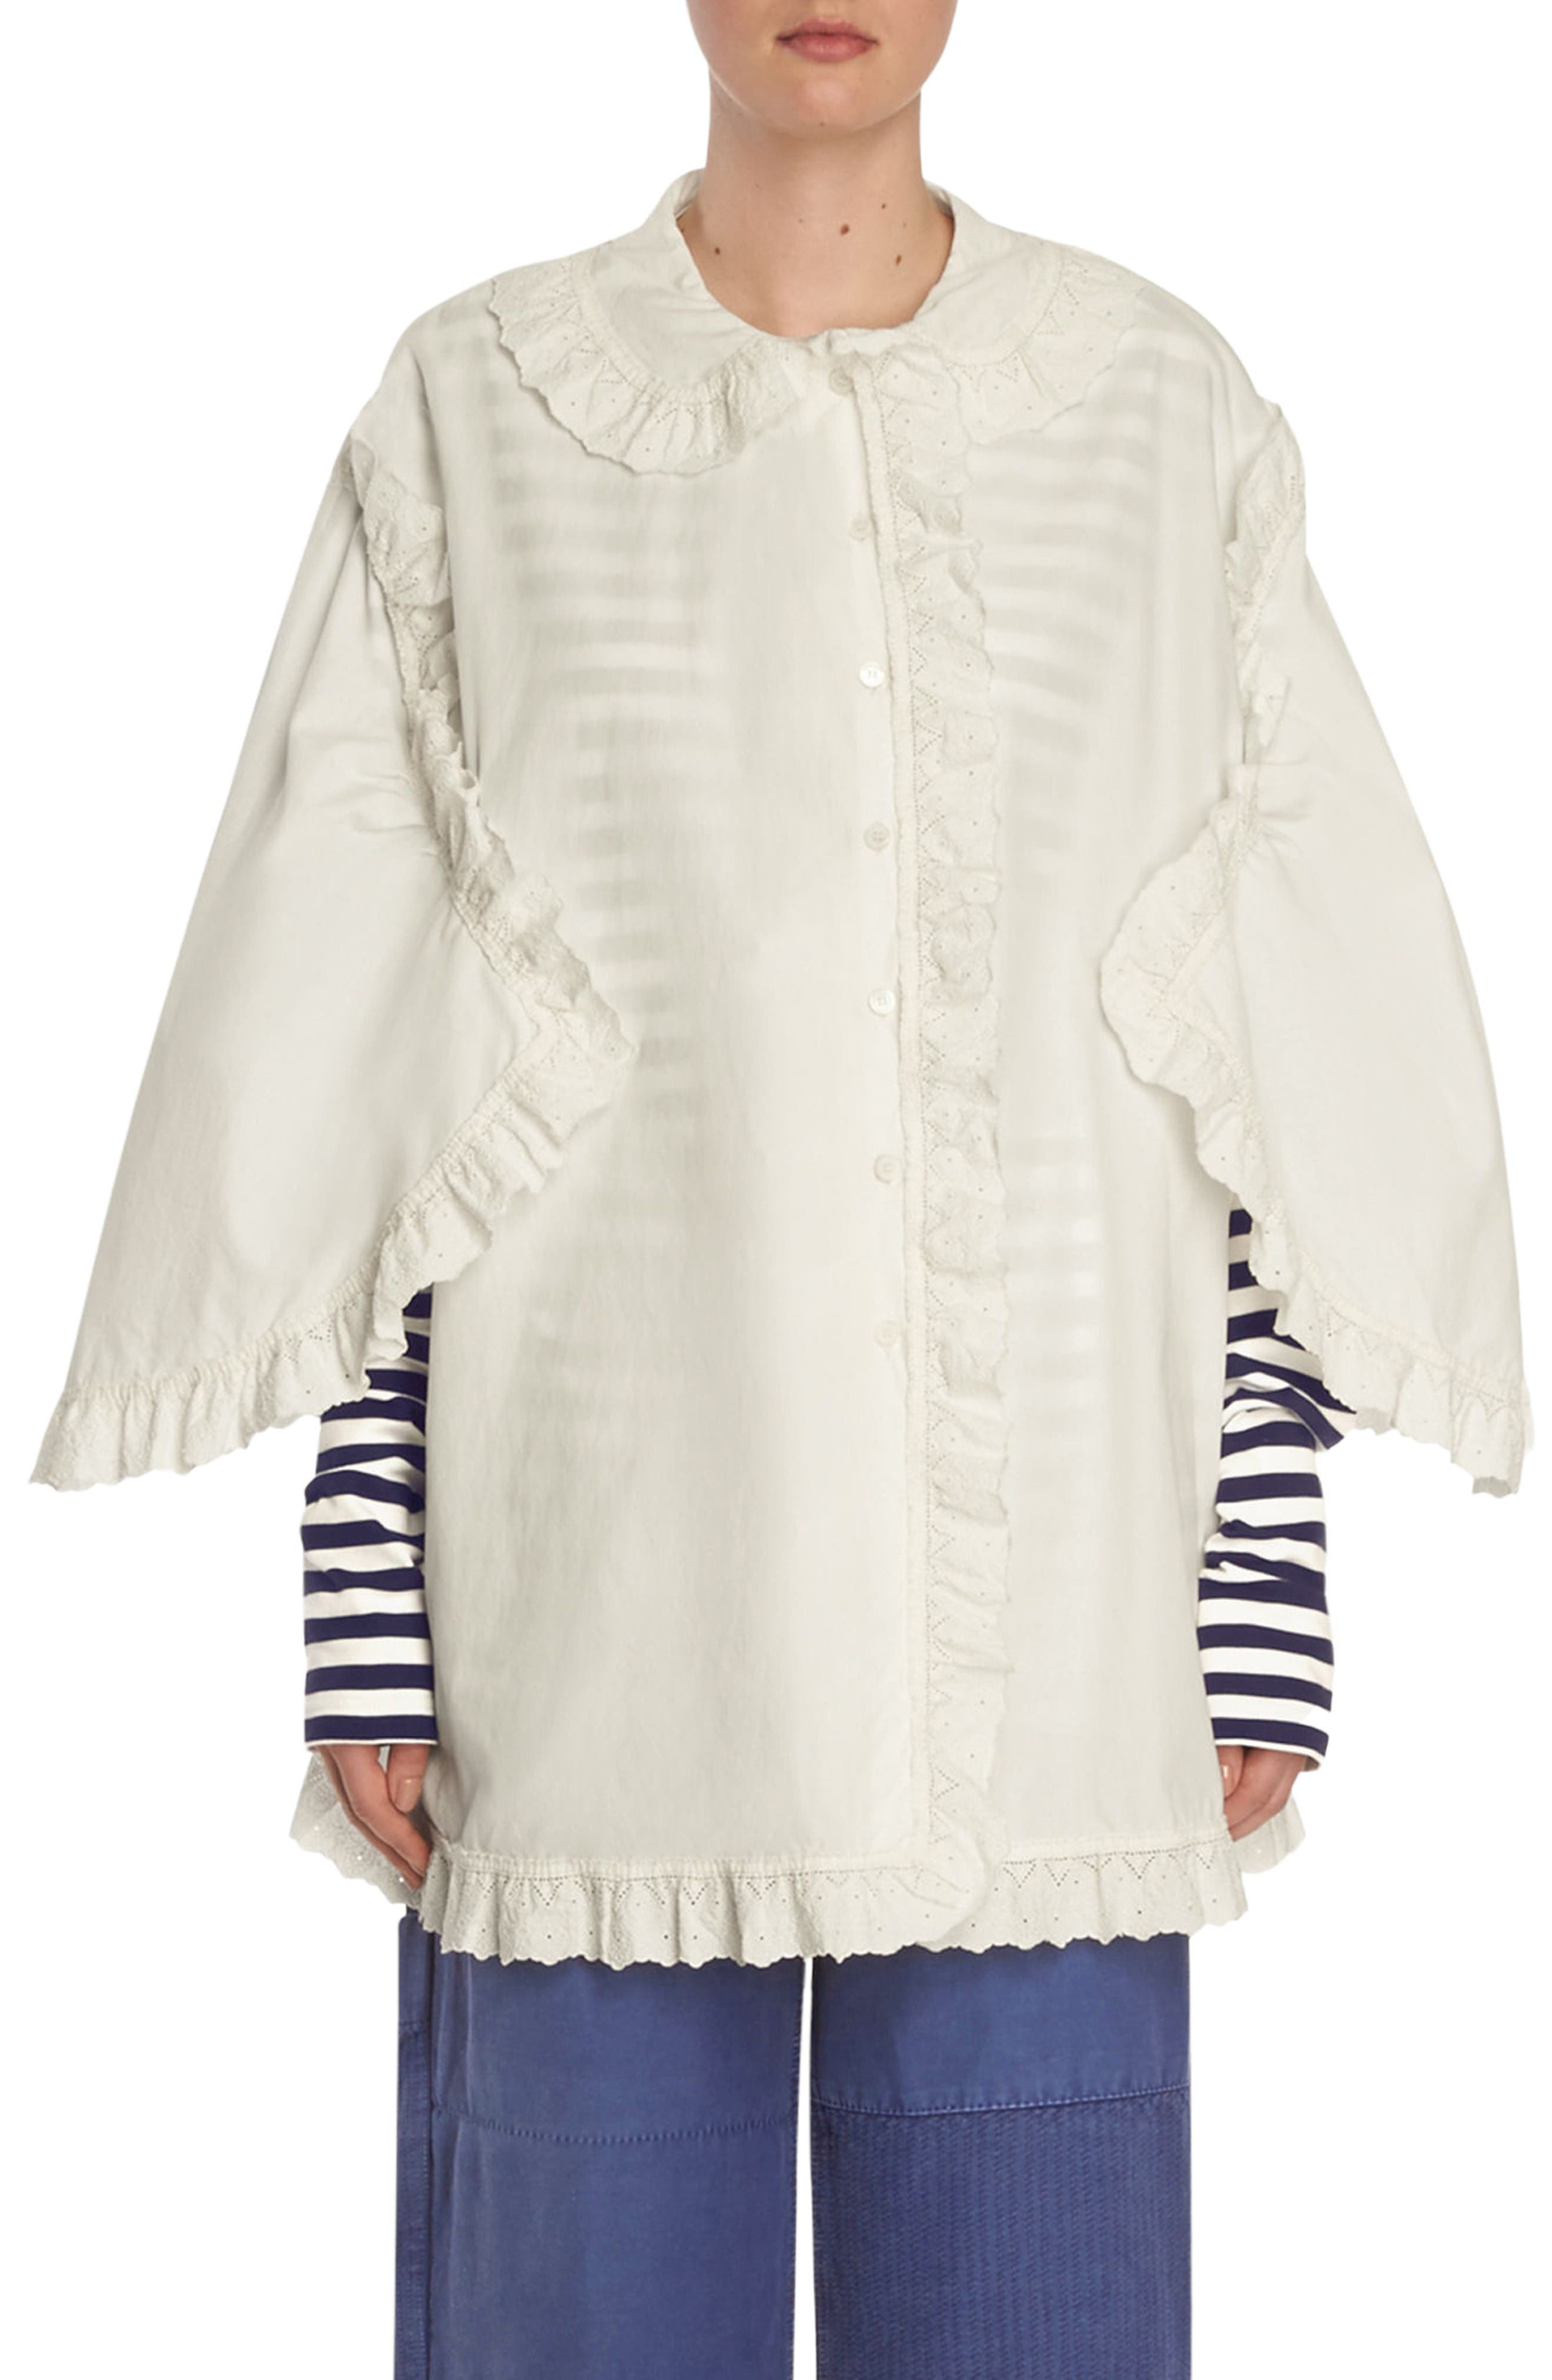 Alternate Image 1 Selected - Burberry Ruffle Blouse